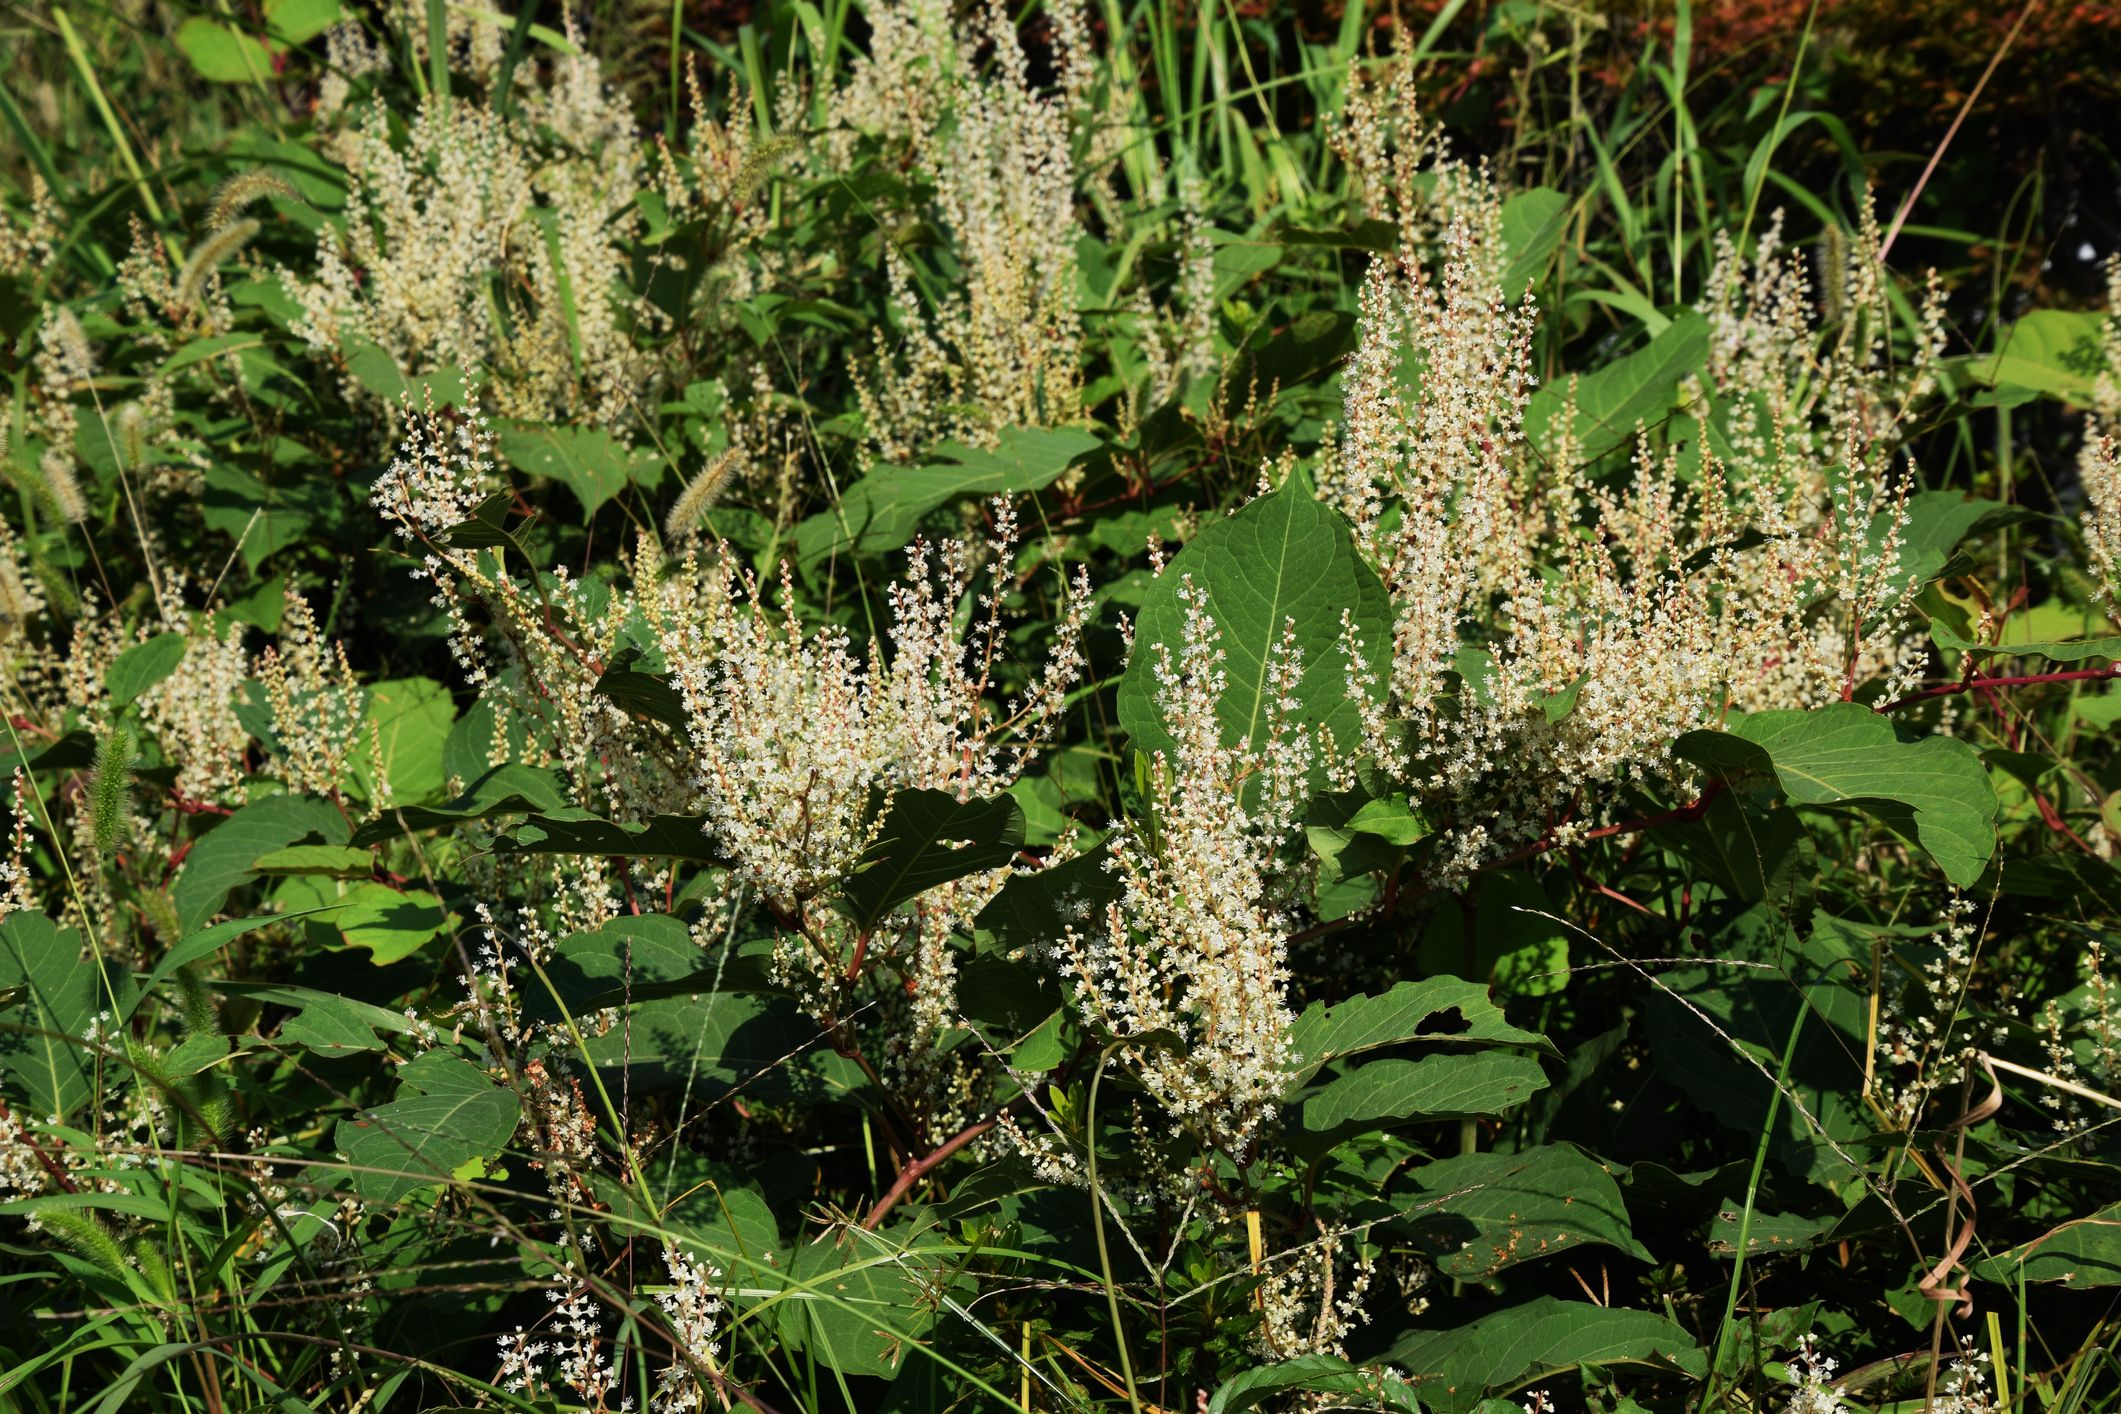 House hunters urged to be extra vigilant for signs of Japanese knotweed this winter as sellers could conceal plant